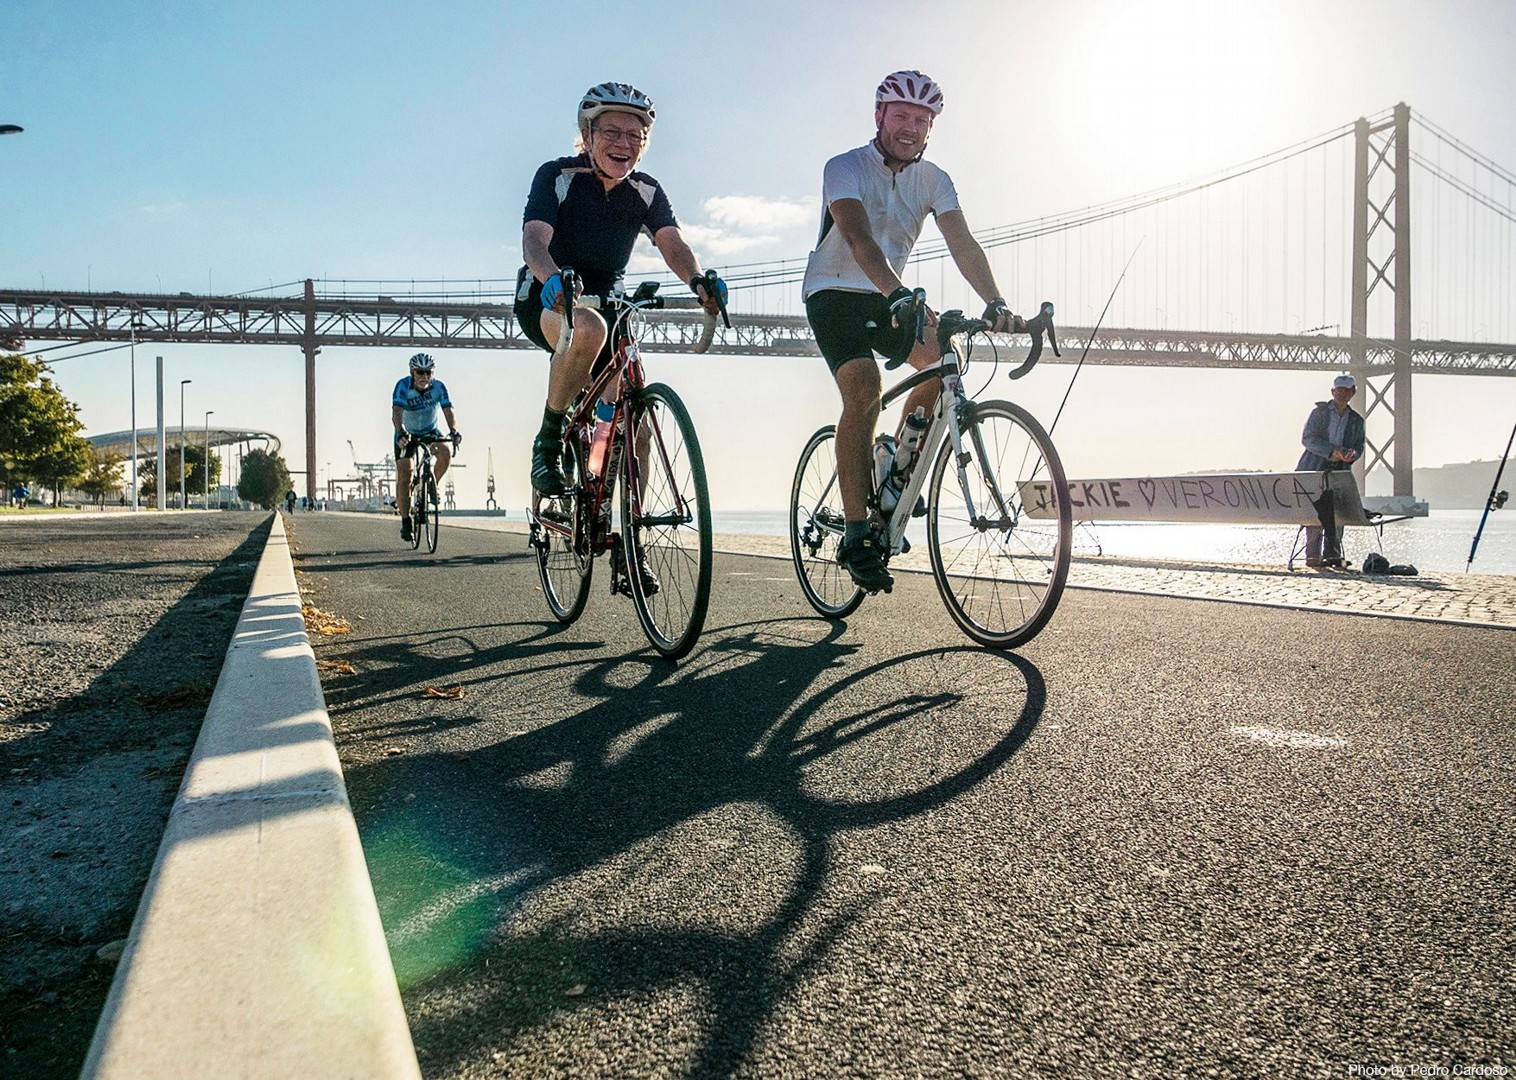 portugal-guided-road-cycling.jpg - Portugal - Atlantic Escape - Guided Road Cycling Holiday - Road Cycling